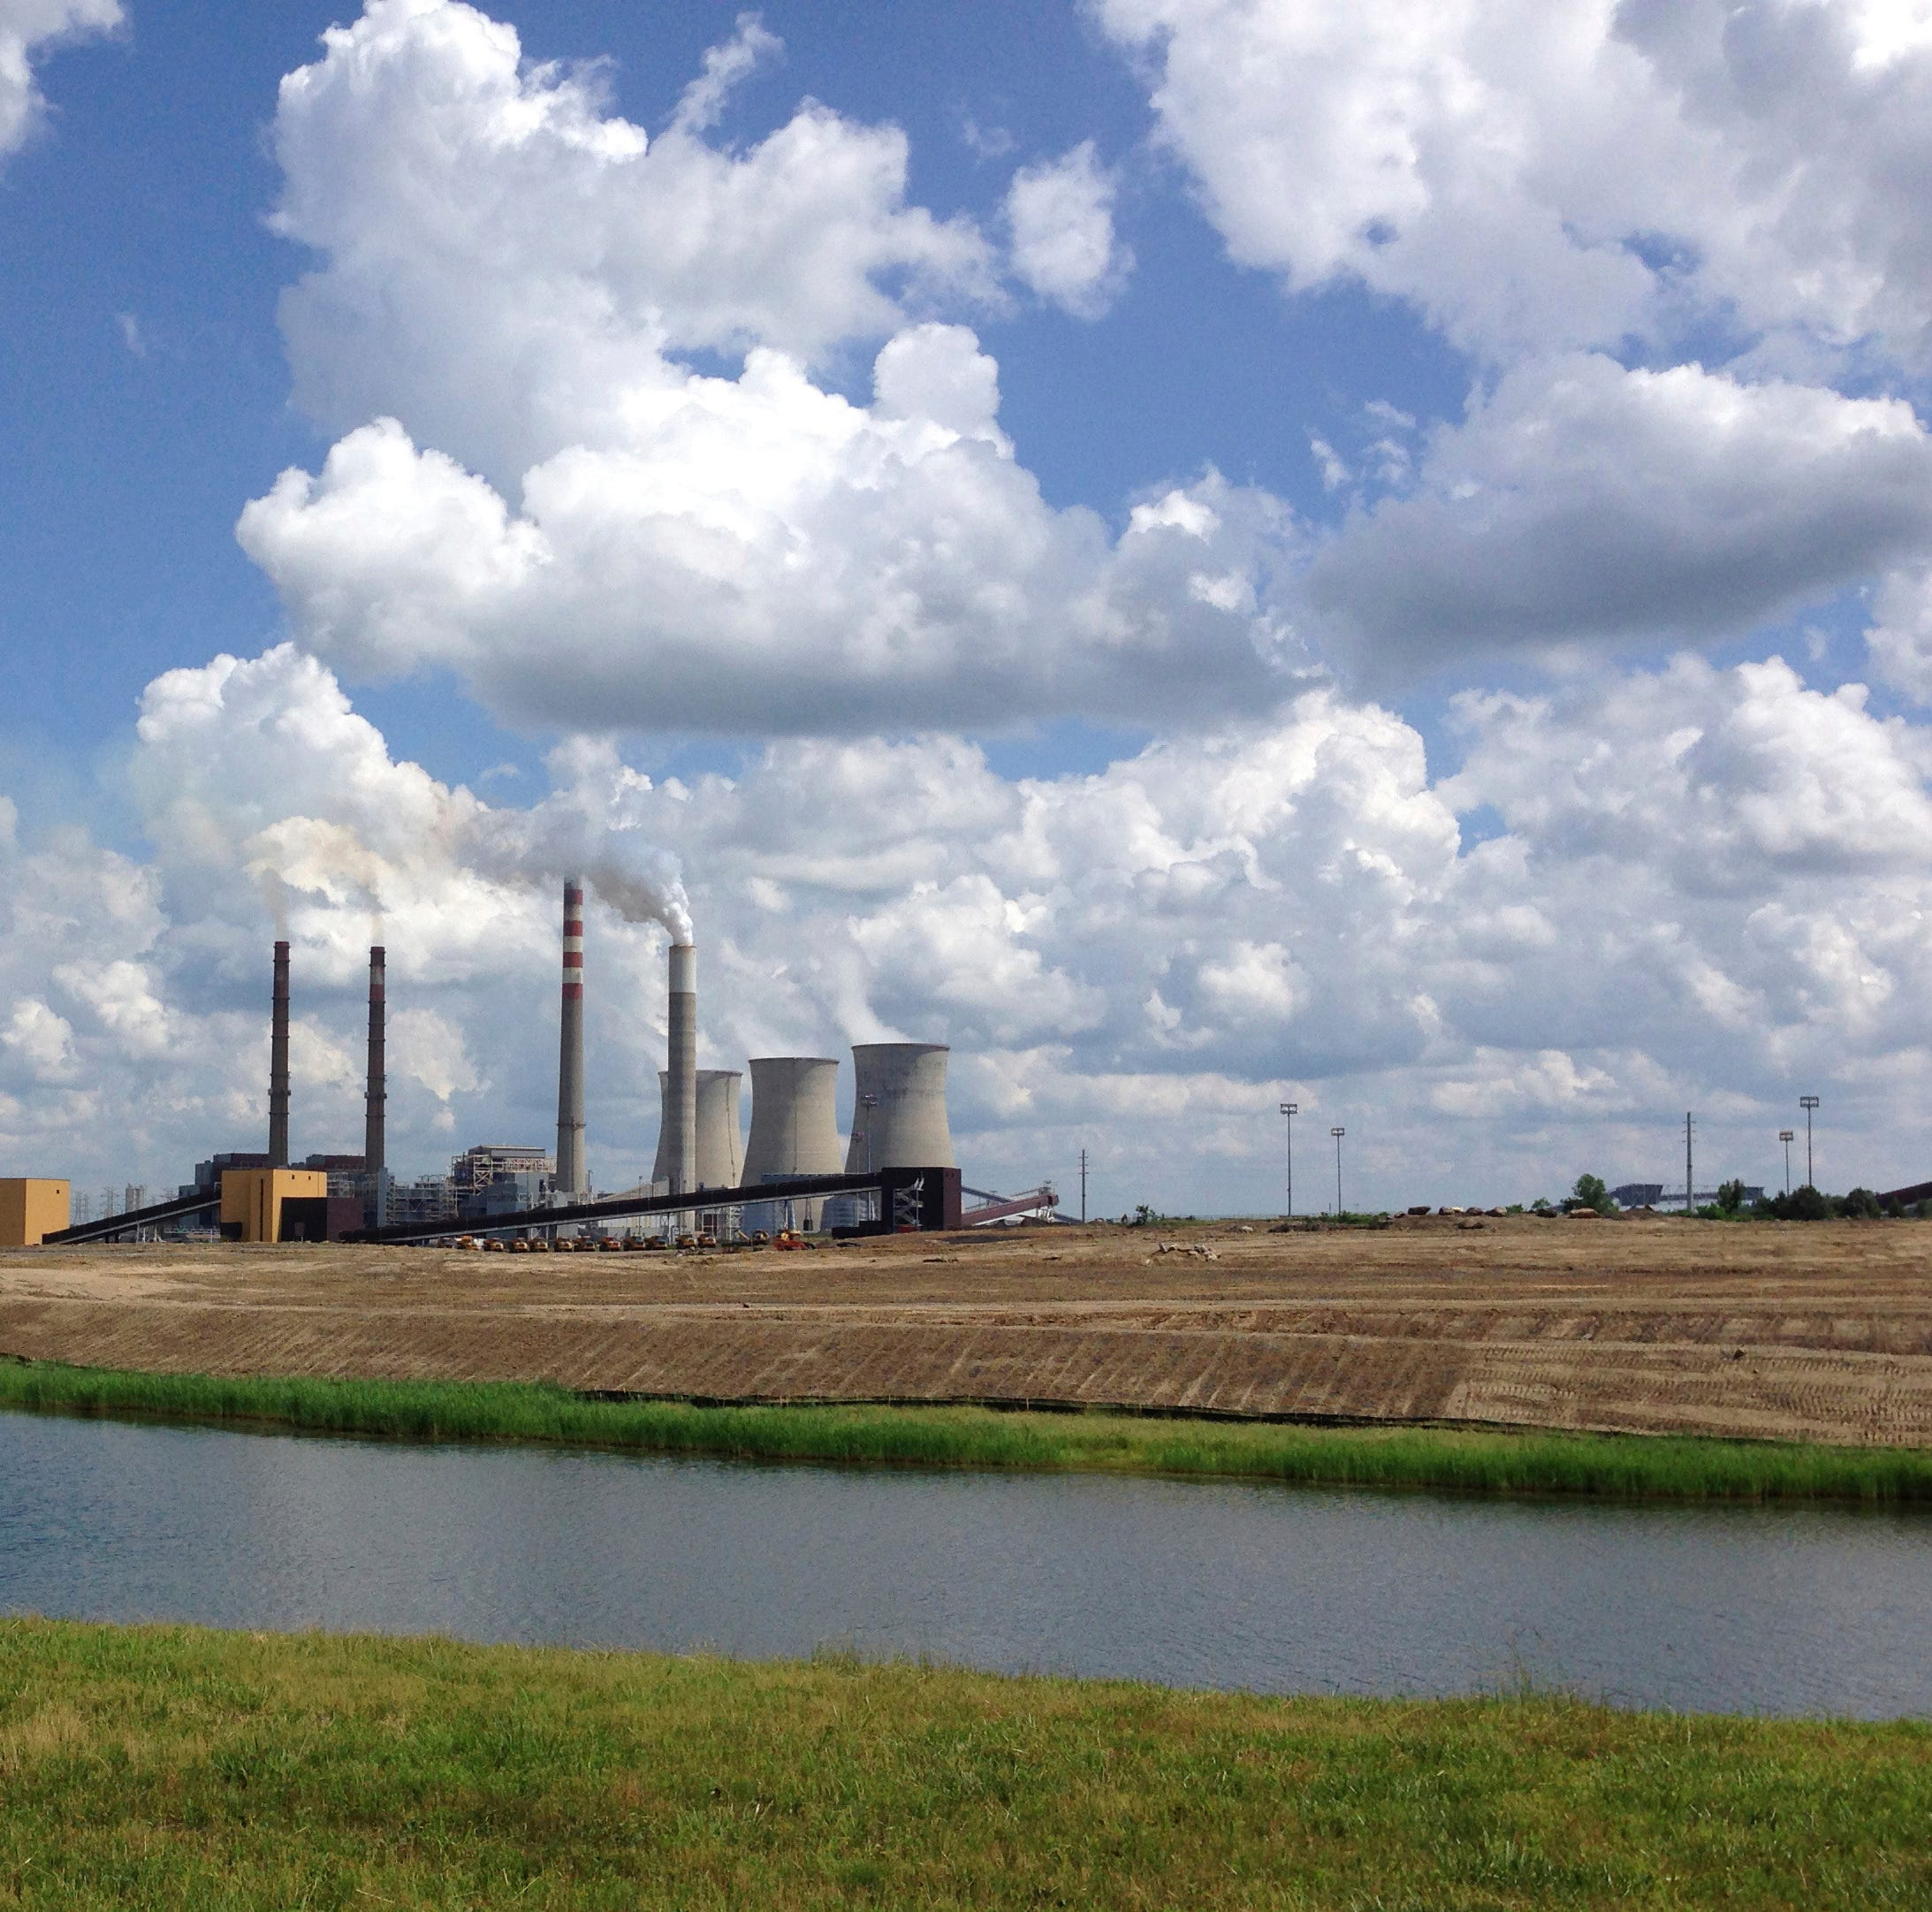 FILE - This June 3, 2014, file photo shows a panoramic view of the Paradise Fossil Plant in Drakesboro Ky. President Donald Trump's vow to save the coal industry will be tested this week when a utility board he appoints weighs whether to close a coal-fired power plant in Kentucky whose suppliers include a mine owned by one of his campaign donors. An environmental assessment by the Tennessee Valley Authority recommends shuttering the remaining coal-fired unit at the Paradise Fossil Plant in Muhlenberg County. The board could vote on Thursday, Feb. 14, 2019. (AP Photo/Dylan Lovan, File)